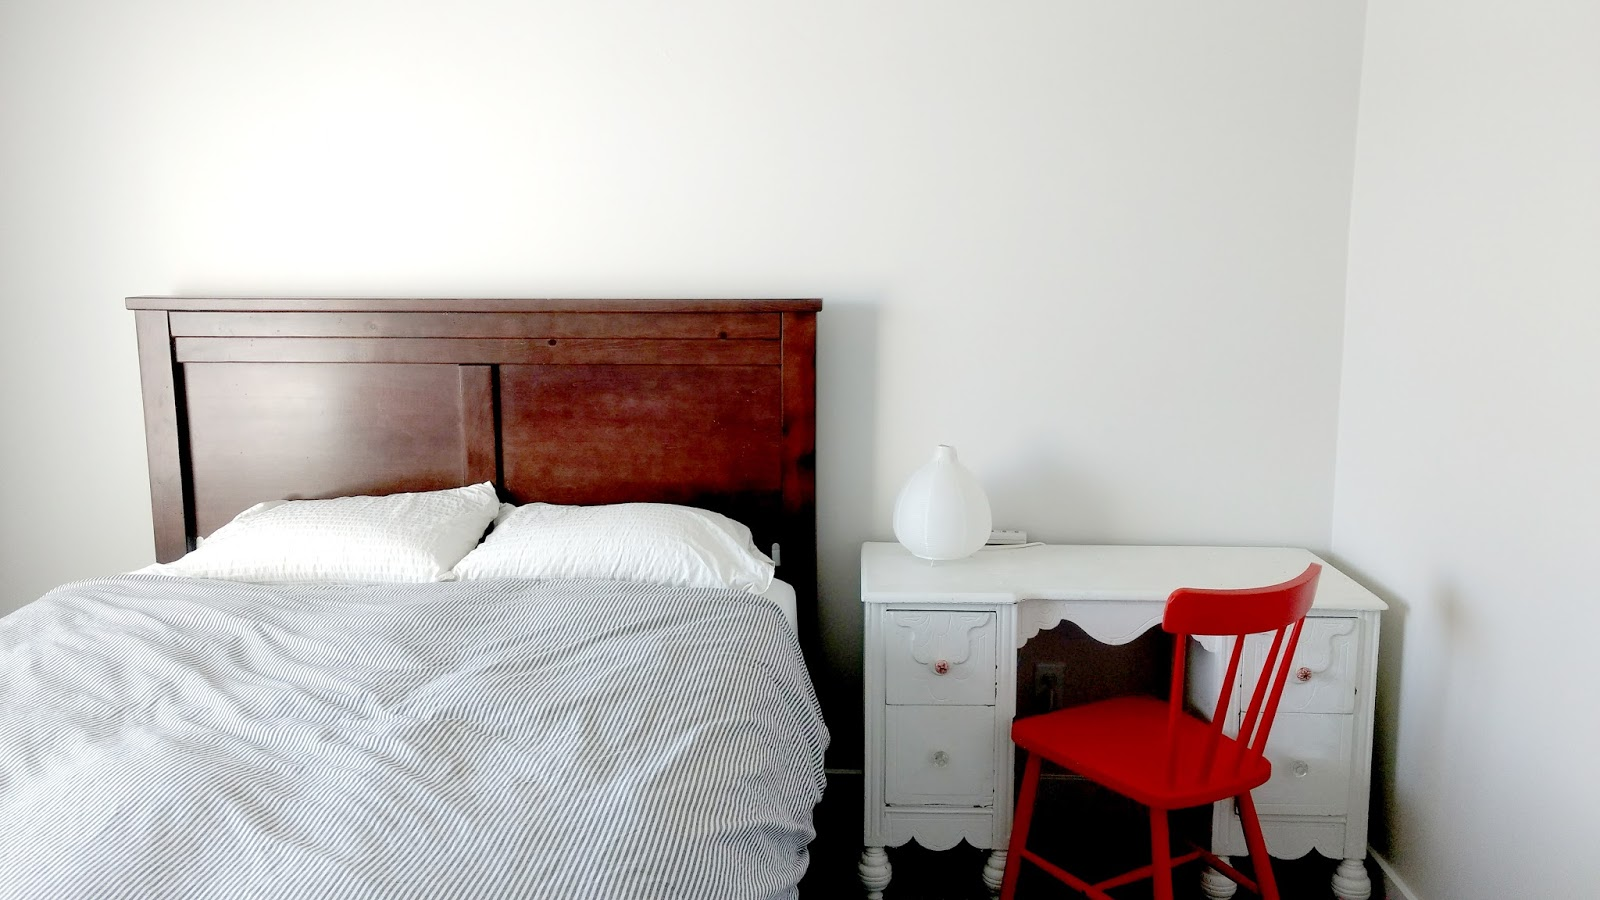 Our old queen headboard and bed along